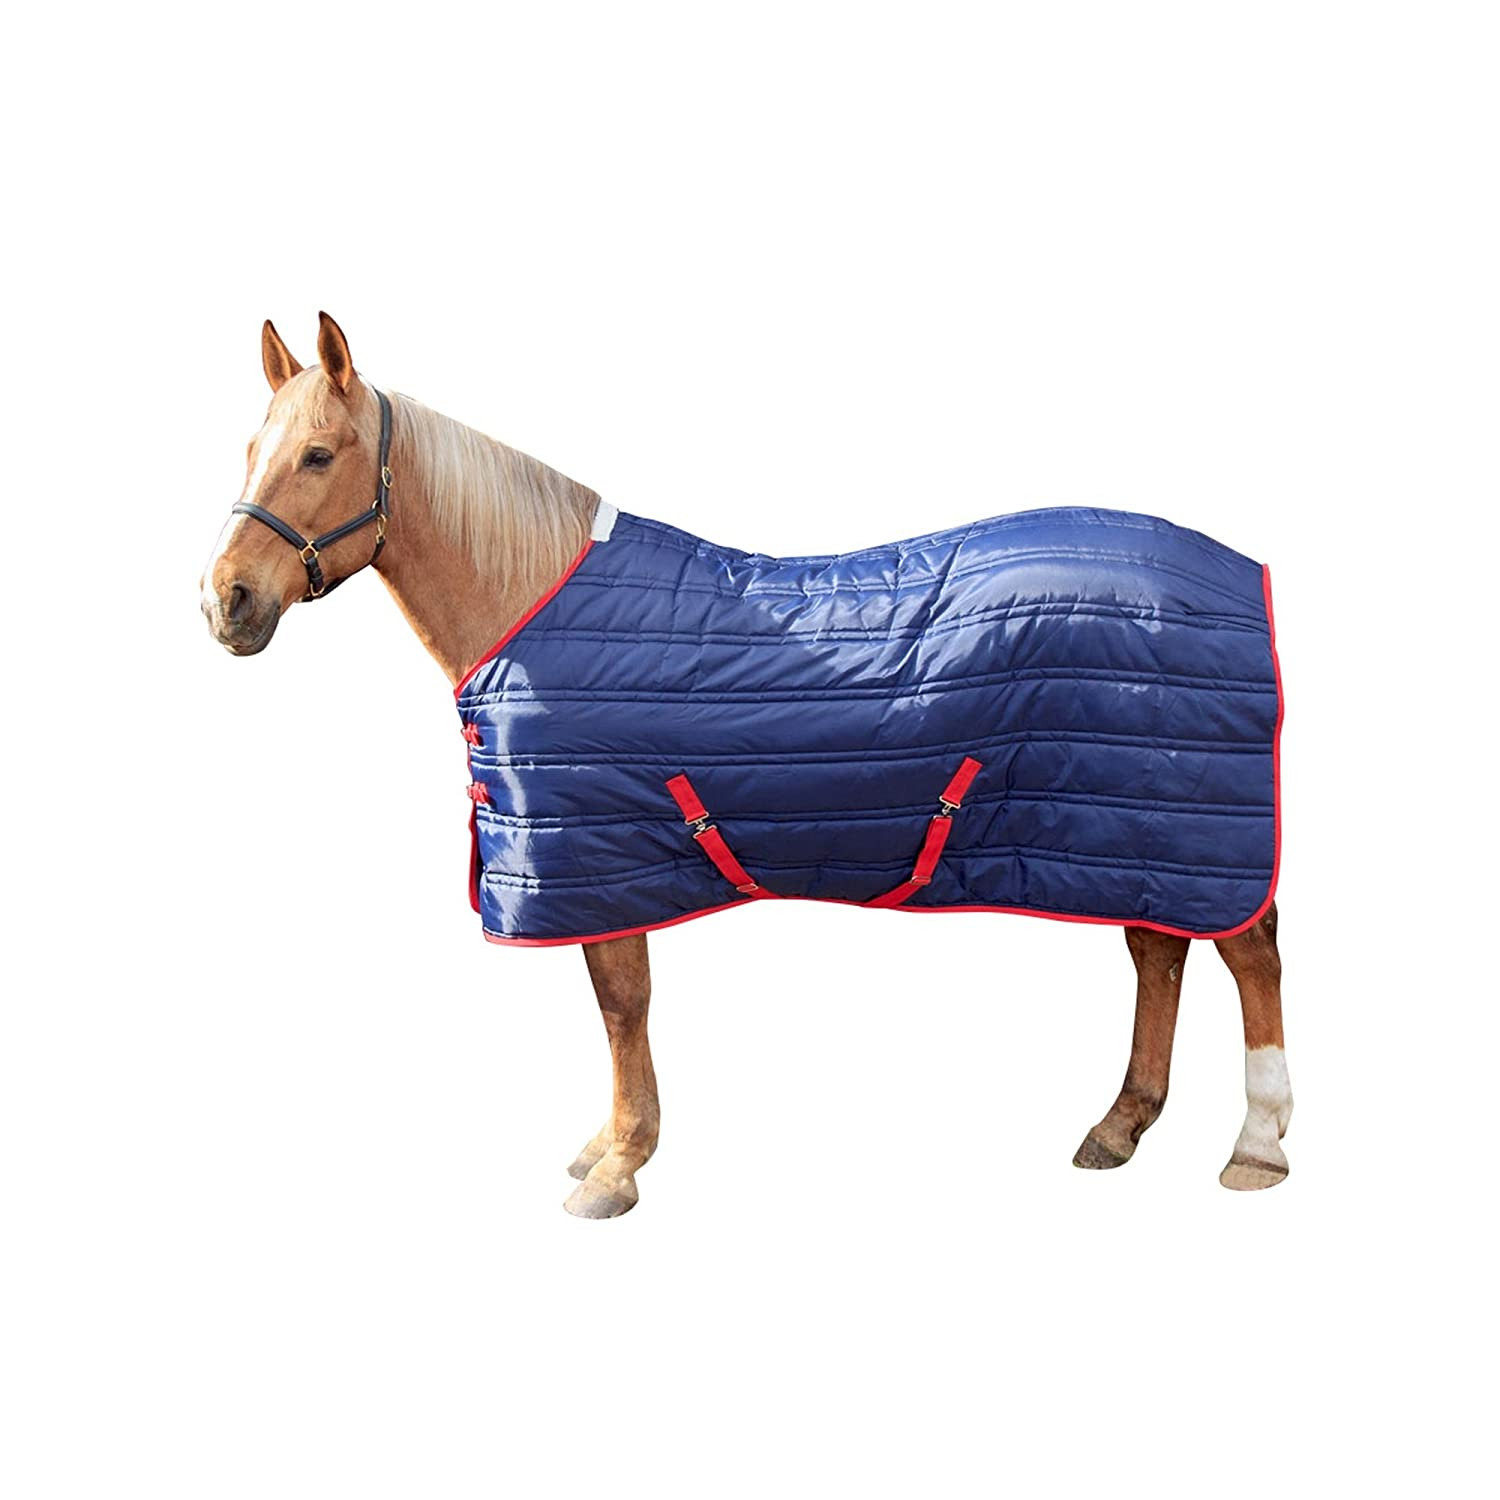 Navy Red 7 ft Navy Red 7 ft Whitaker Thomas 8.8 oz Stable Rug (7 ft) (Navy Red)